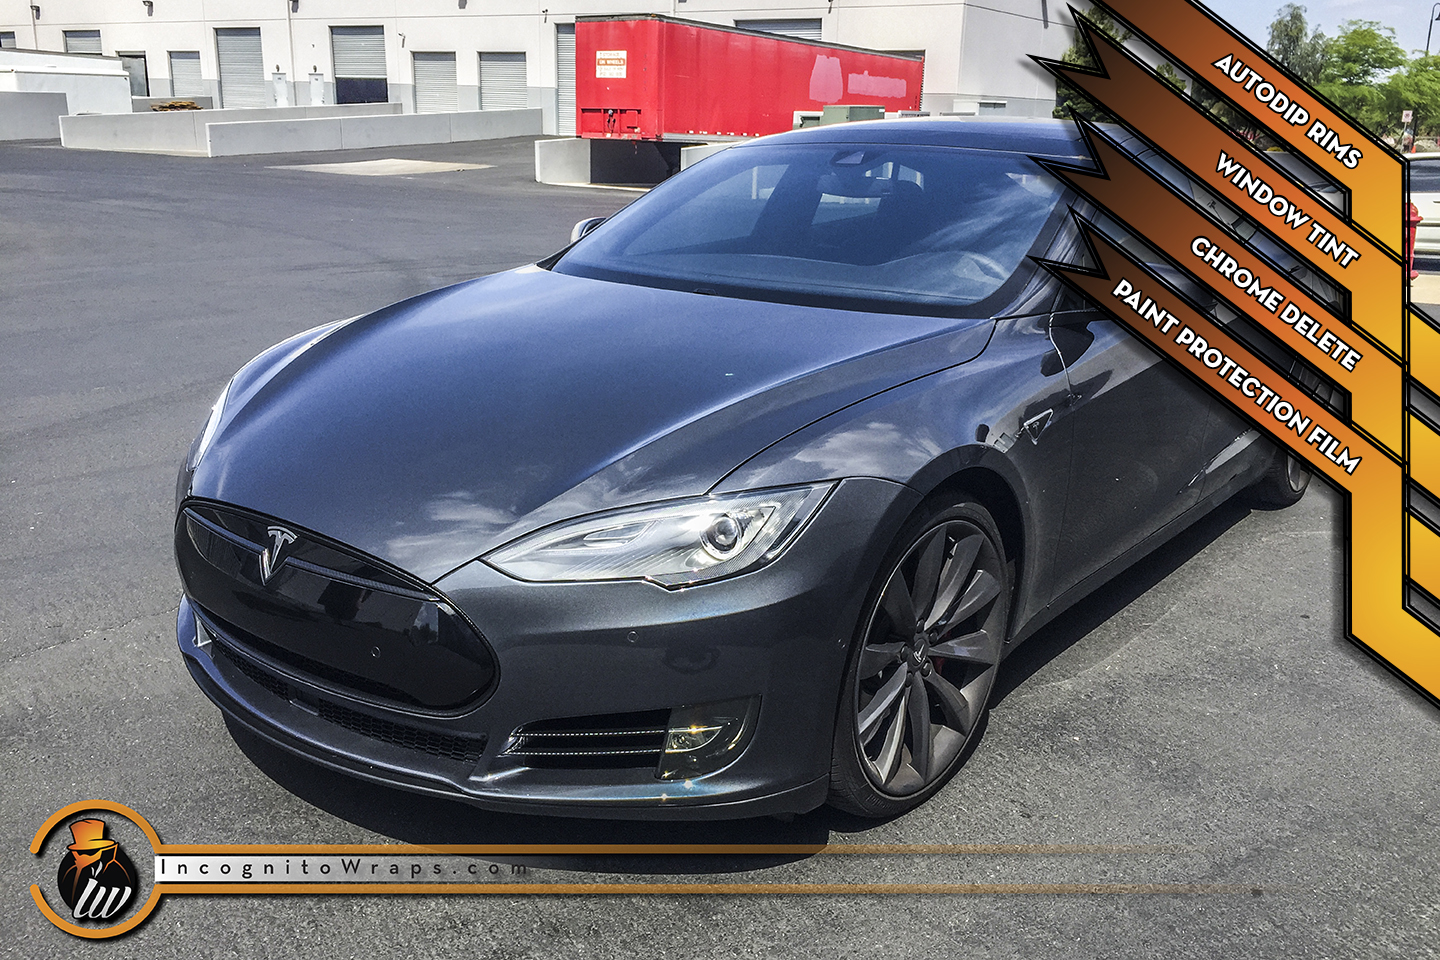 Tesla Model S - Carbon Fiber Chrome Delete, AutoDip Rims, and Paint Protection Film